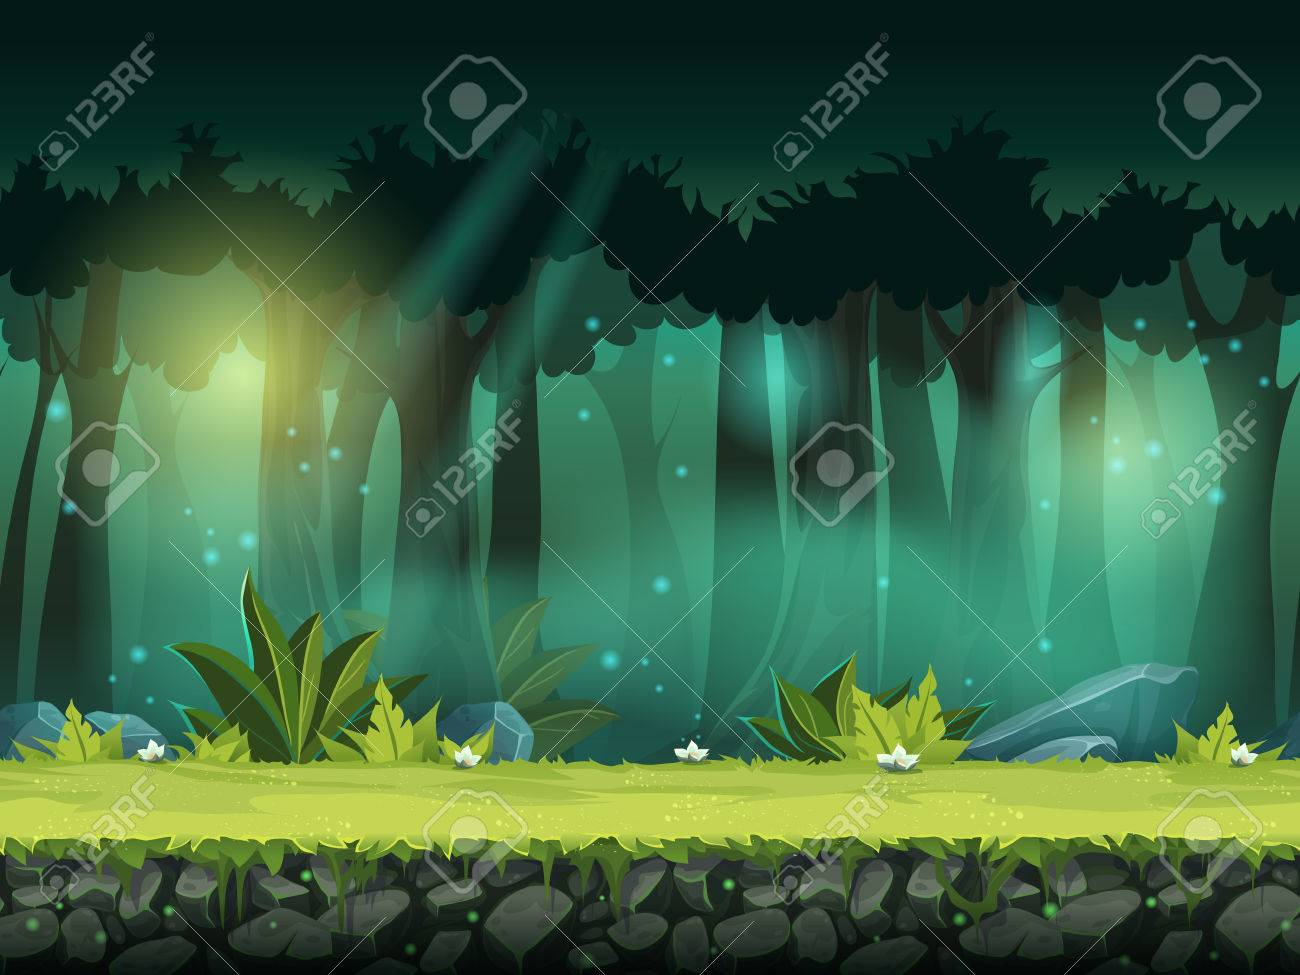 horizontal seamless illustration of forest in a magical mist - 62241272